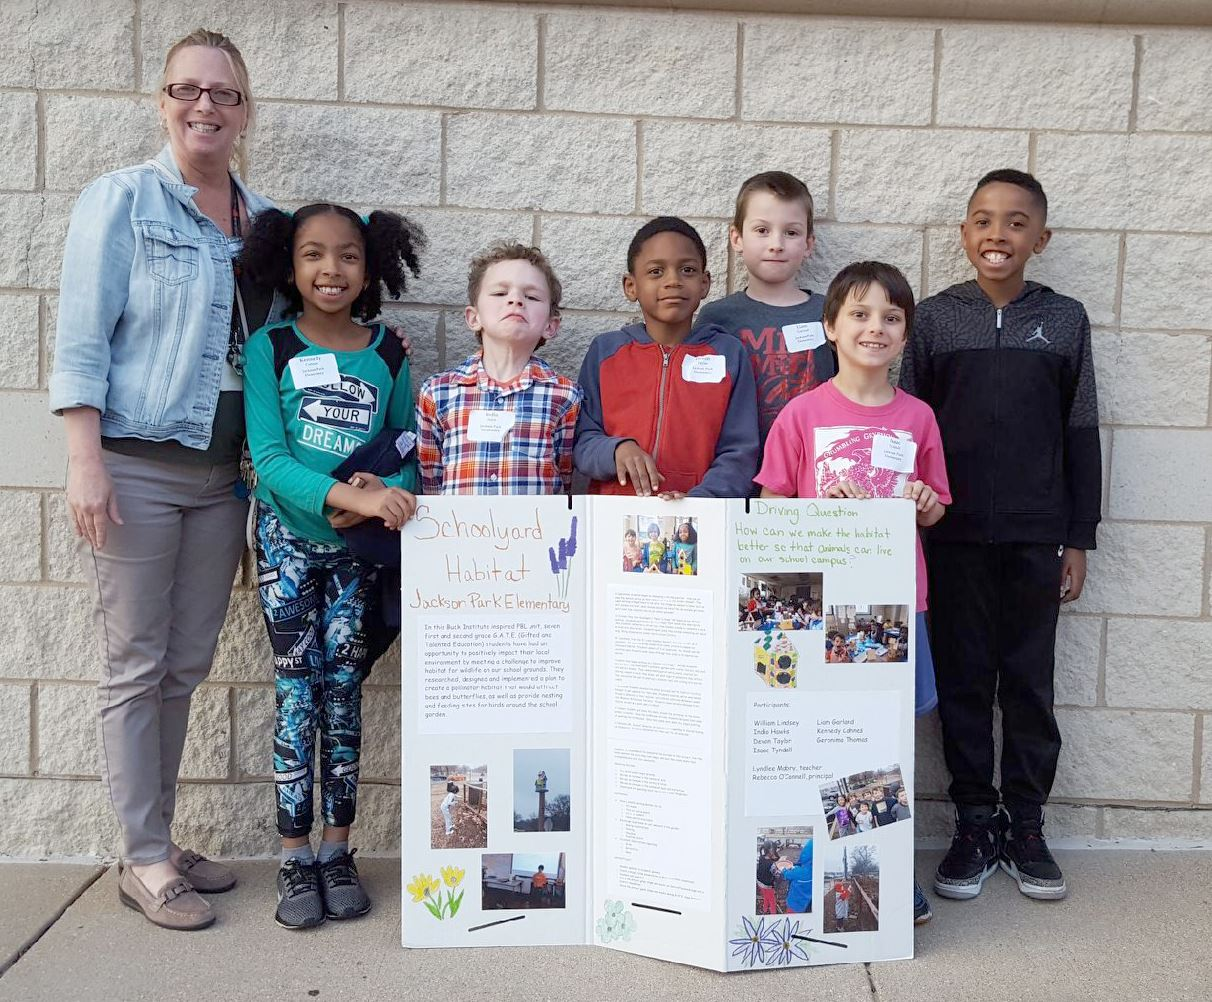 students and teacher with schoolyard habitat project display board